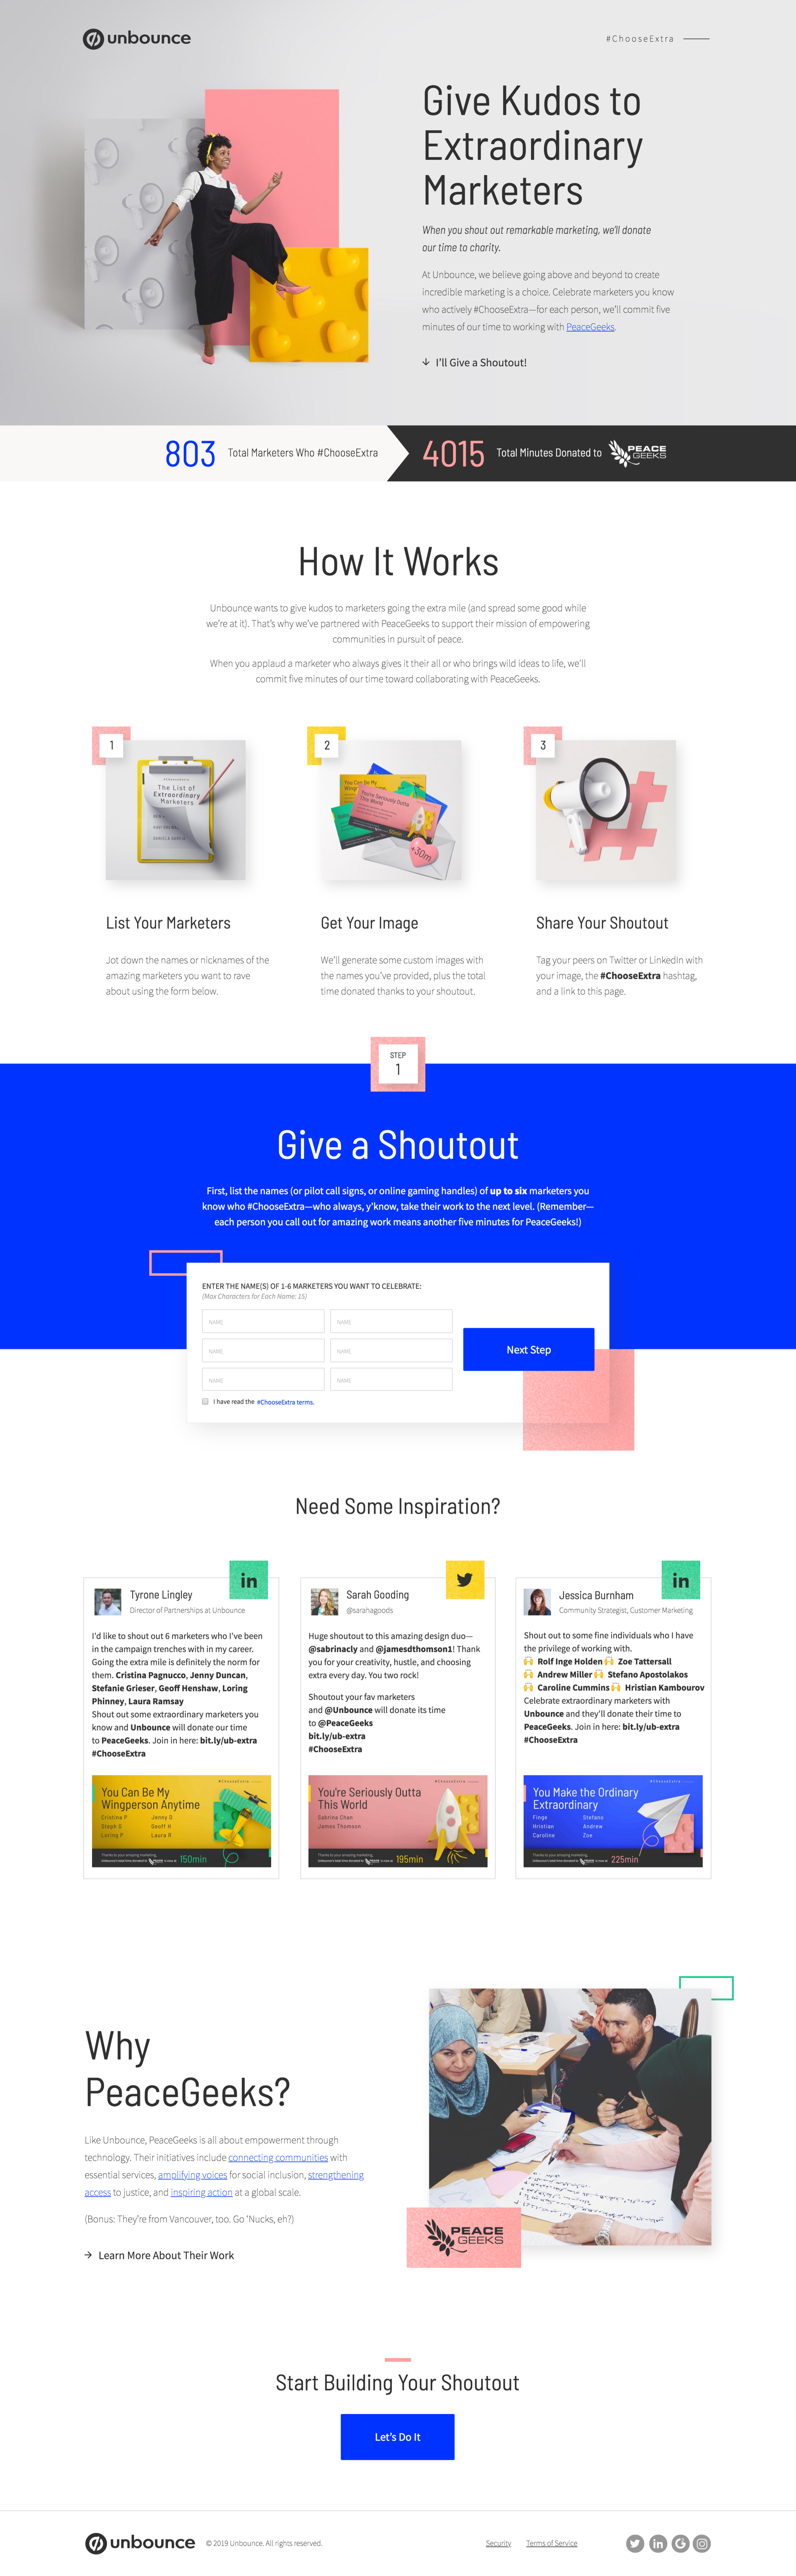 screencapture-unbounce-extra-2019-06-28-12_56_56.png